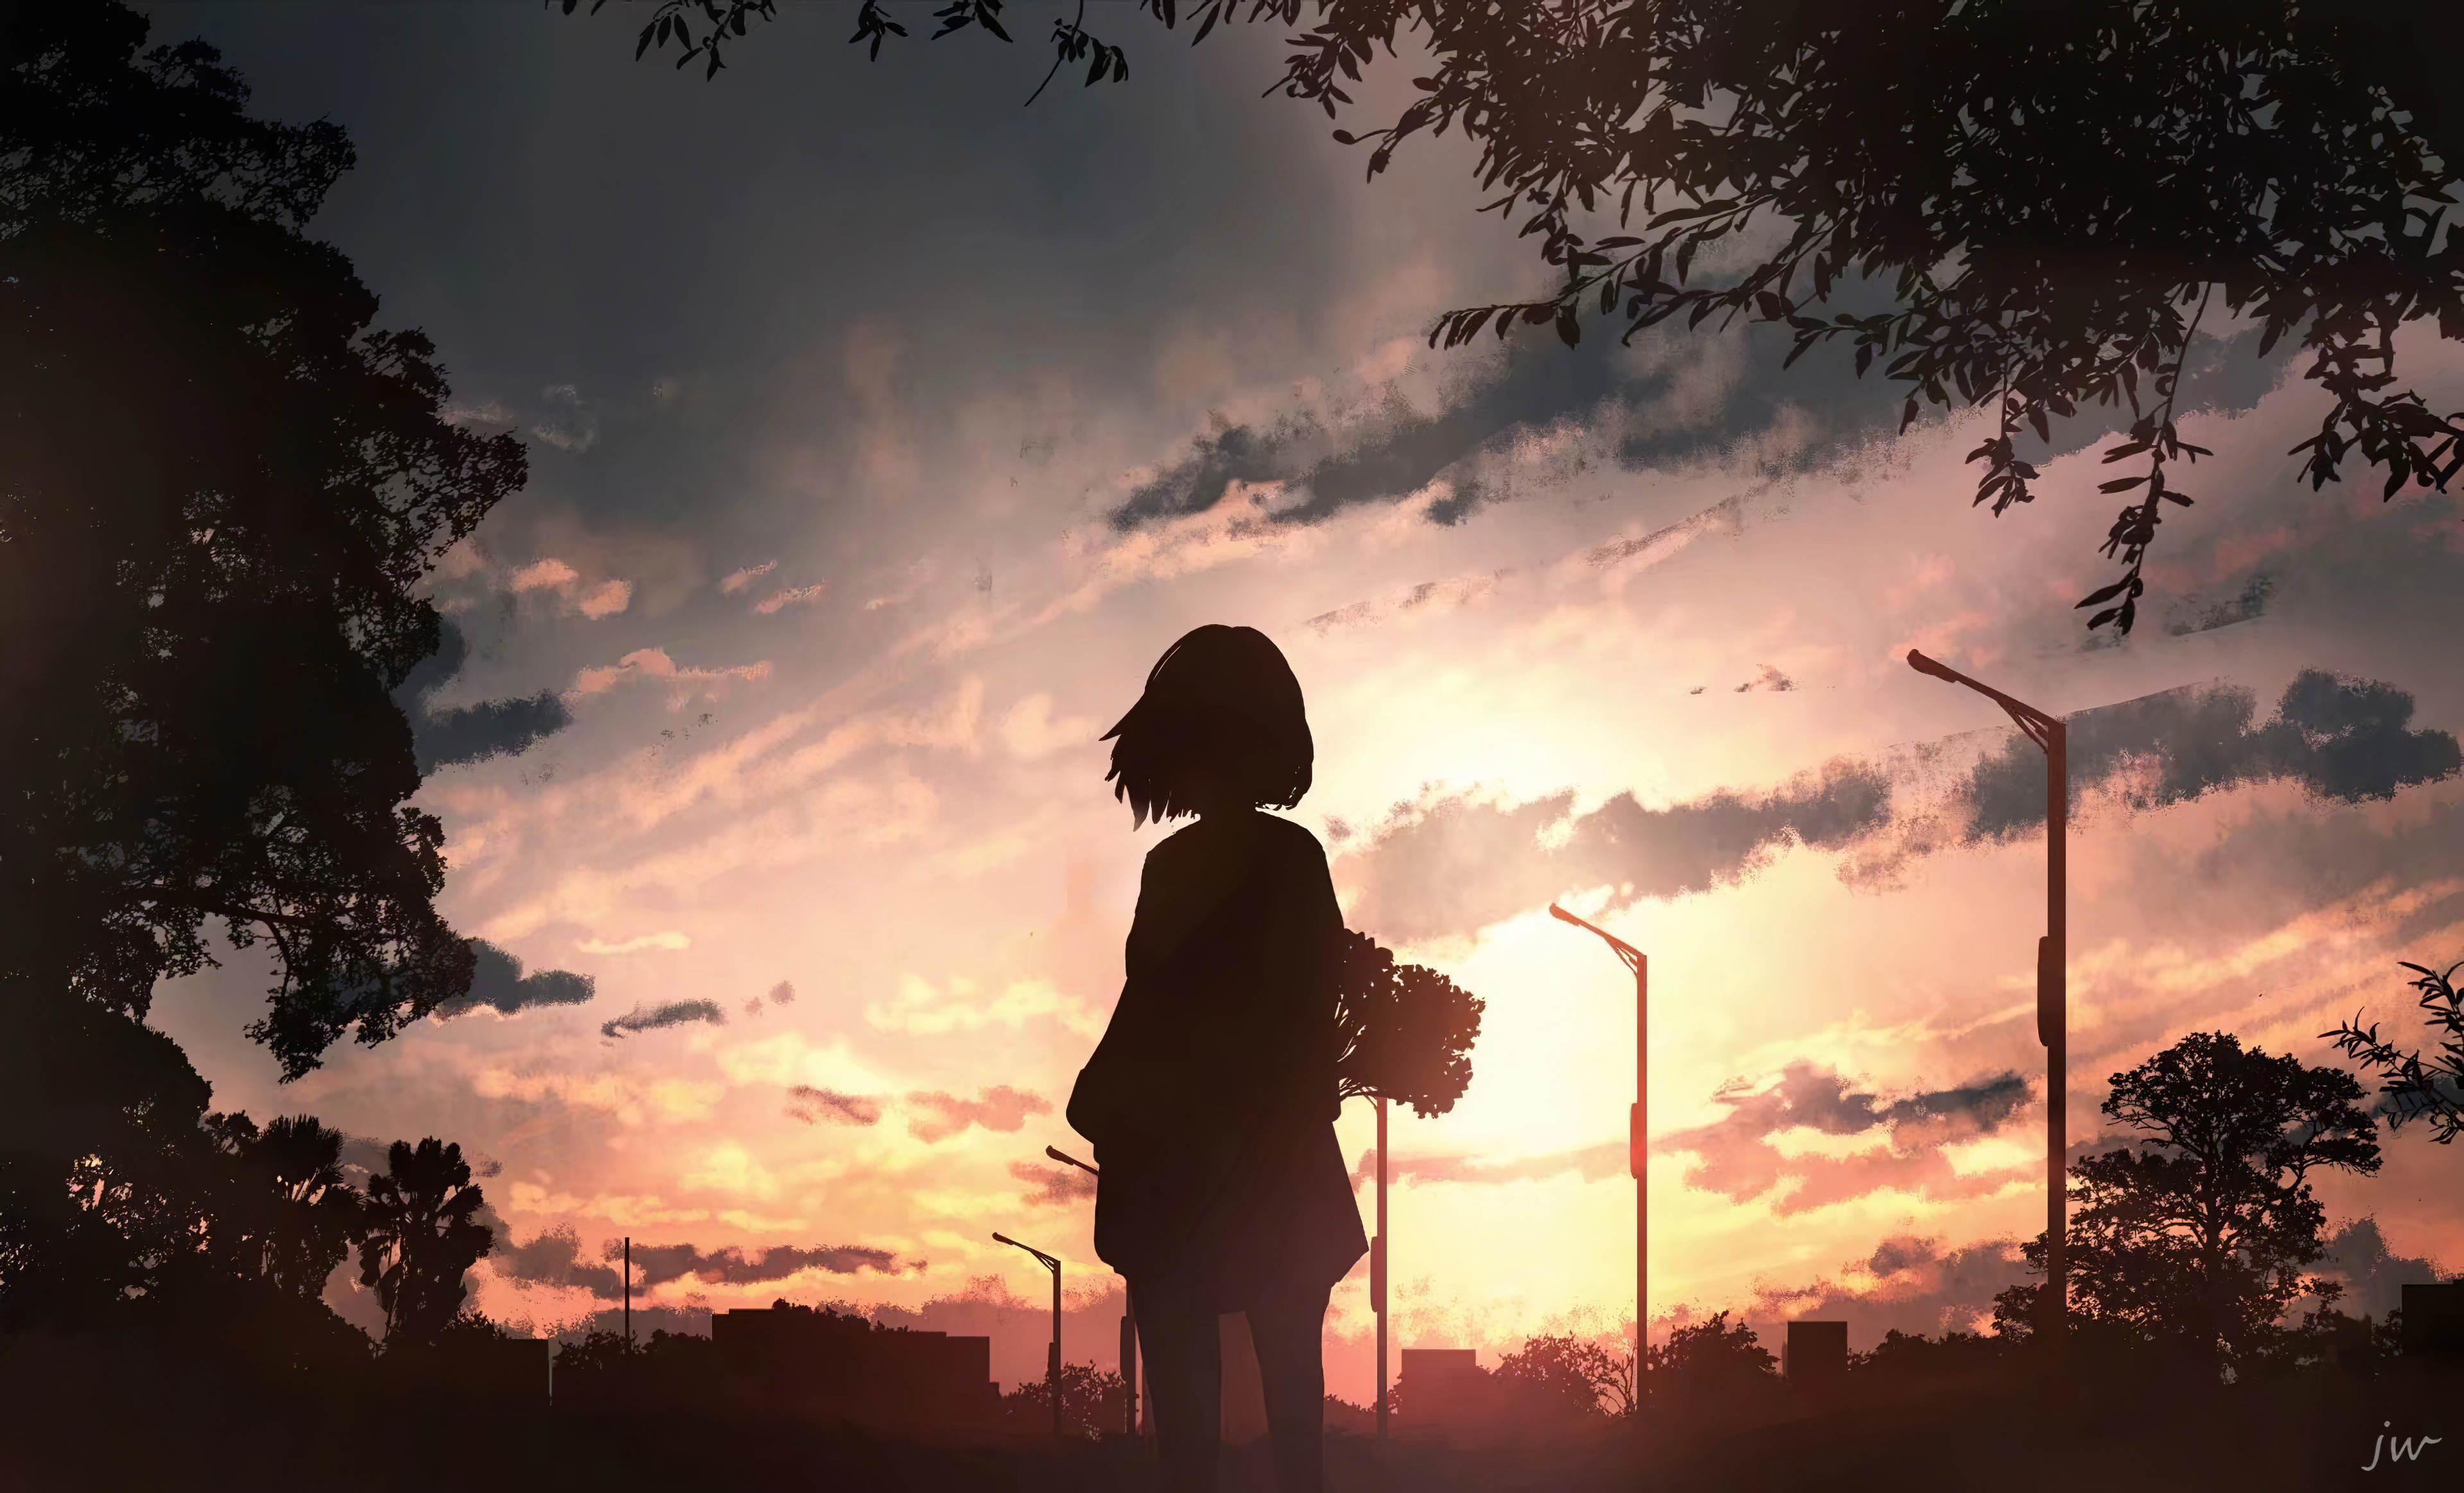 anime girl with flowers looking towards sunset 2j